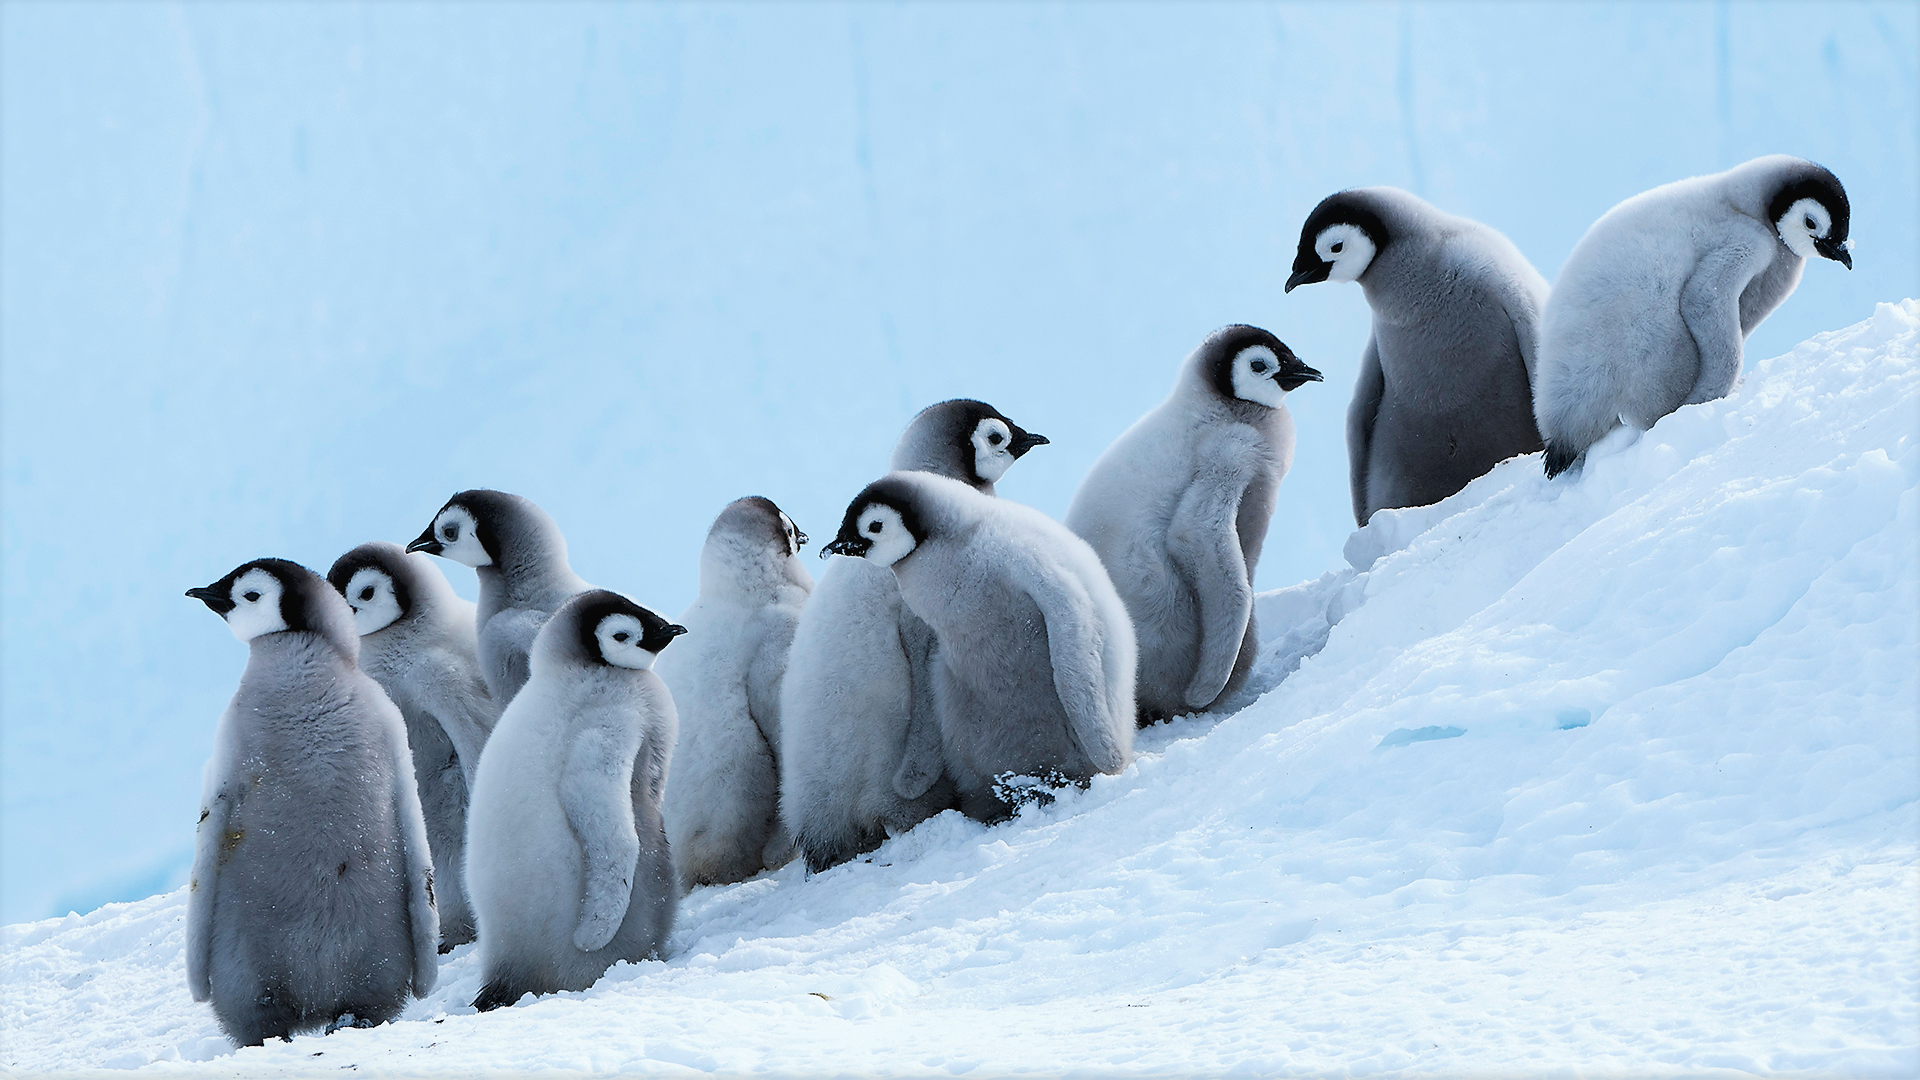 Adorable Baby Penguins in Snow Wallpaper   Wallpaper Stream 1920x1080